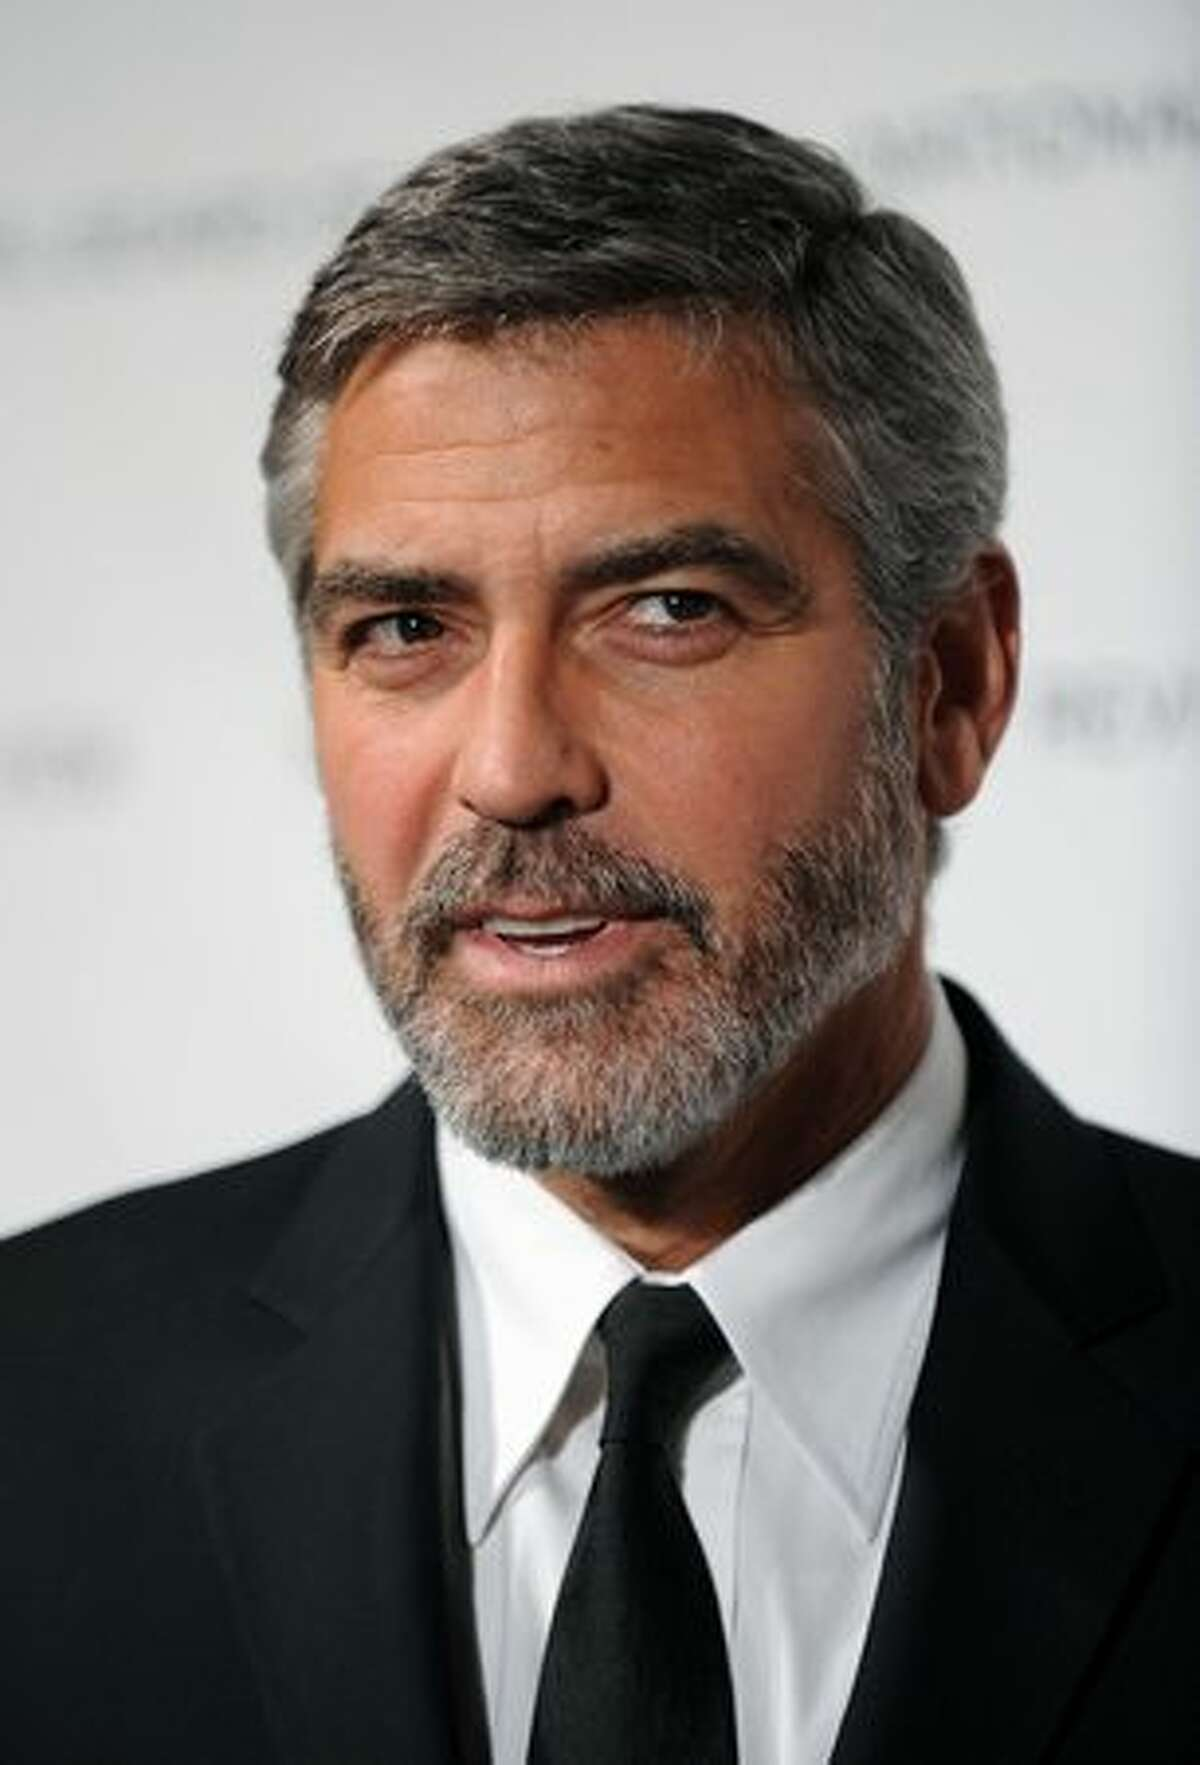 Actor George Clooney attends the National Board of Review of Motion Pictures Awards Gala at Cipriani 42nd Street in New York on Tuesday, Jan. 12, 2010.